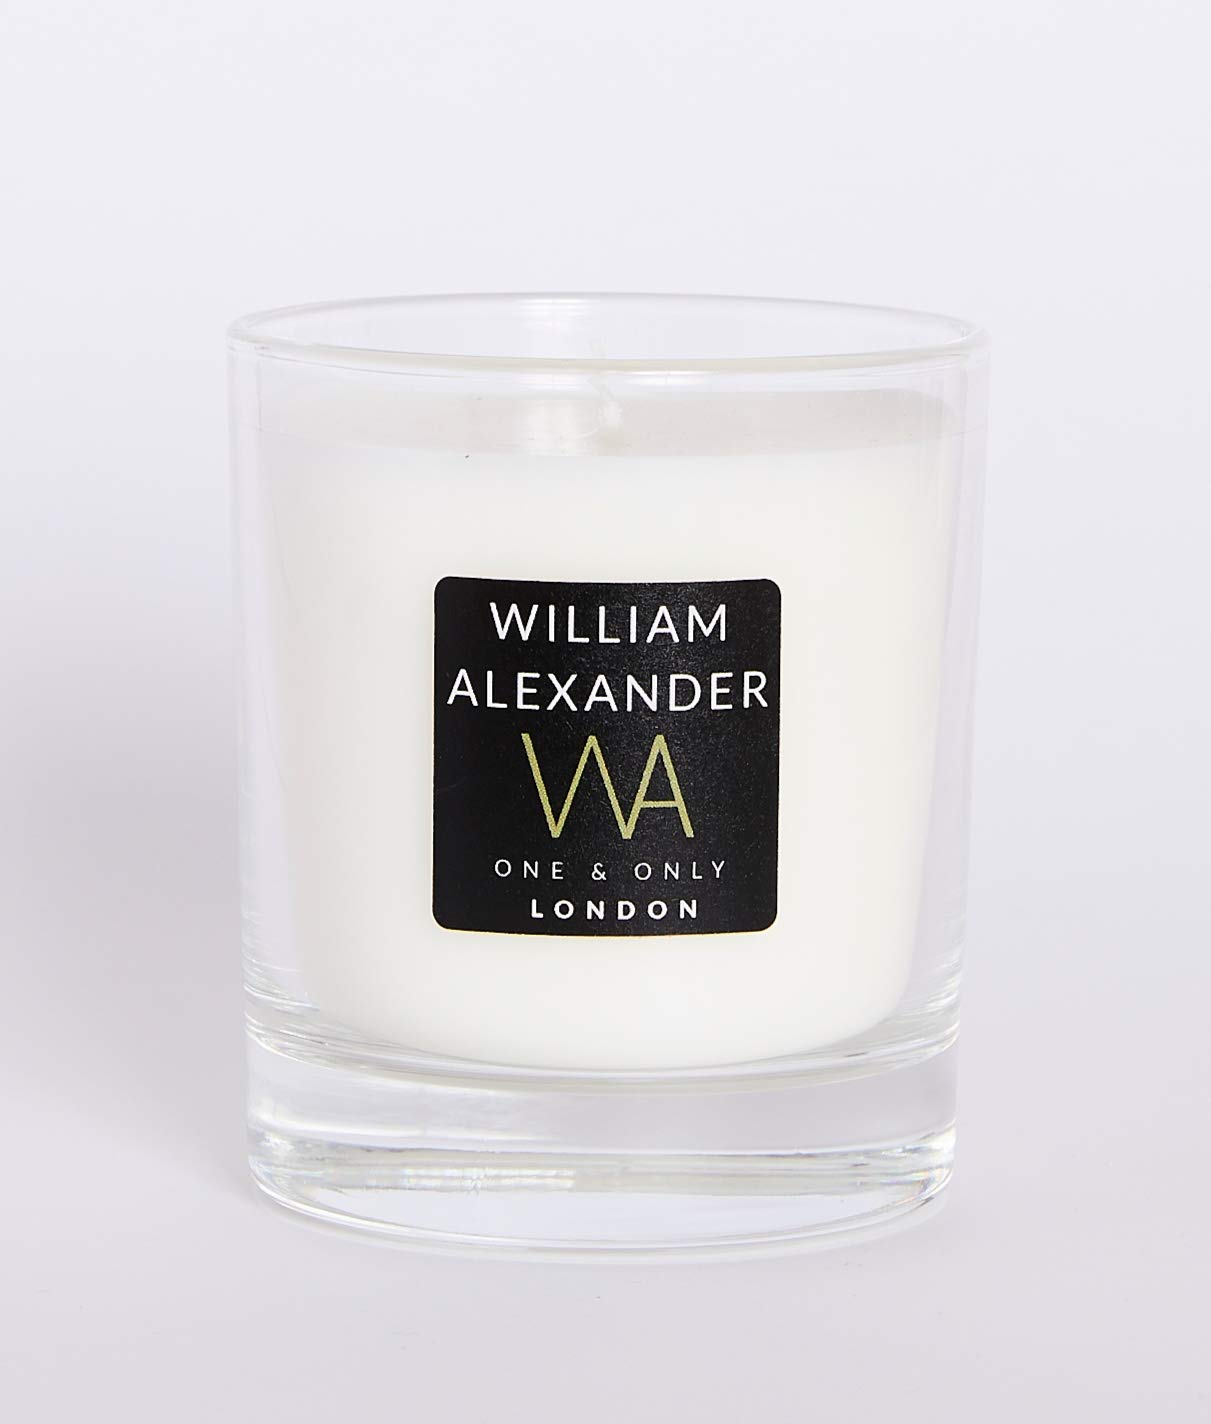 William Alexander One & Only Creed Aventus Luxury Scented Soy Wax Candle